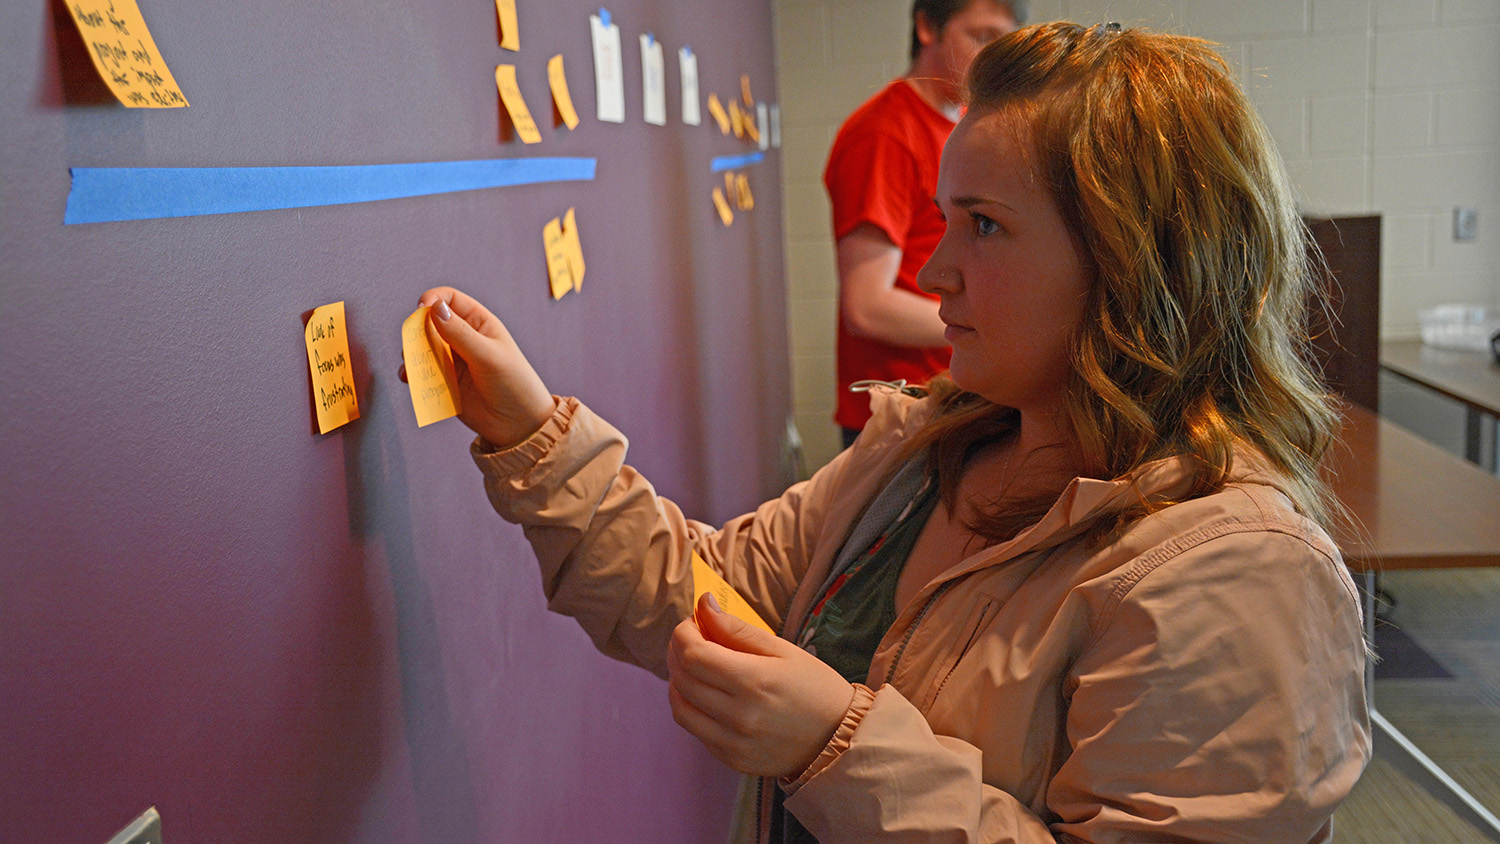 A Fellow puts a sticky note on the wall during a team-building activity.